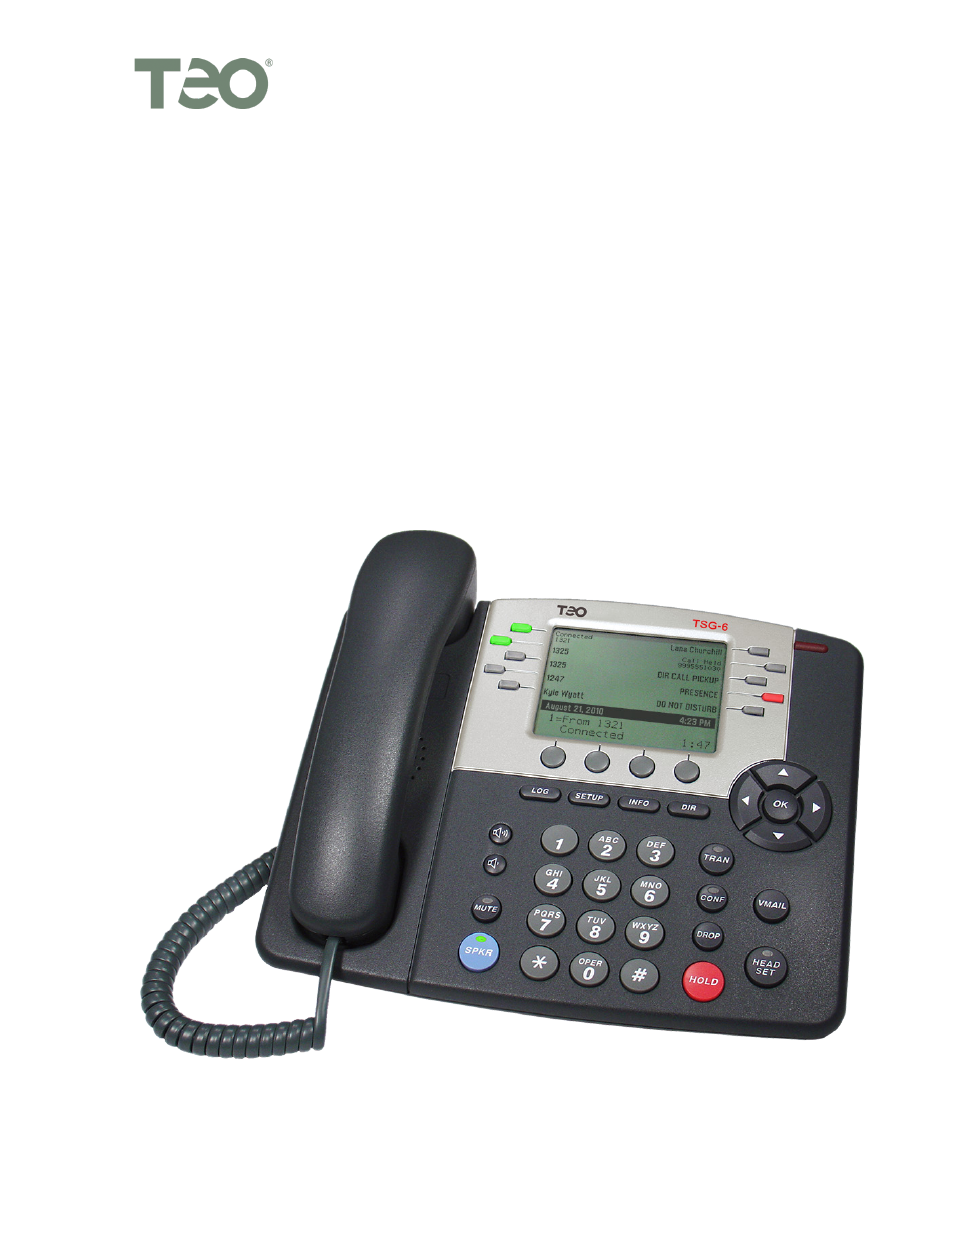 Teo Ip Phone 7810 Tsg Installation User Manual 84 Pages Also For